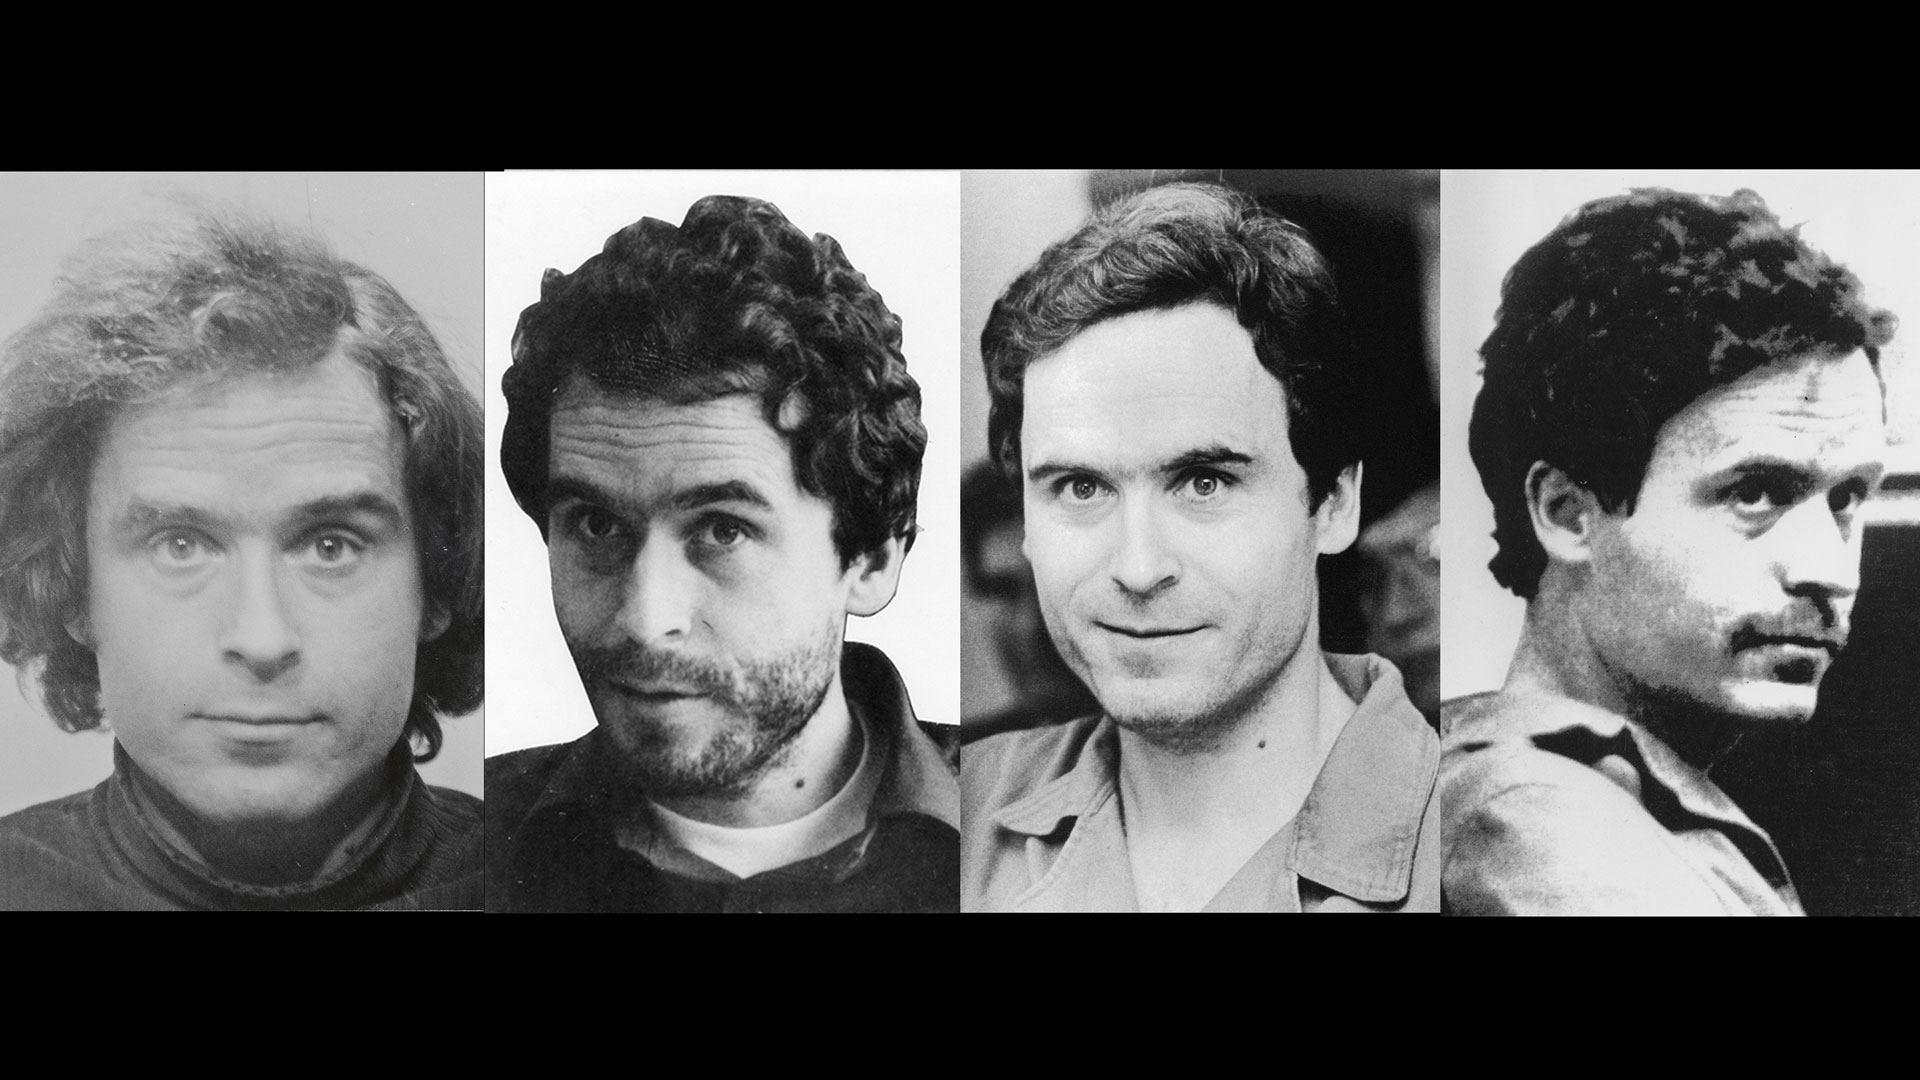 Ted Bundy's Many Faces: How the Serial Killer Was Able to Change His Appearance So Easily